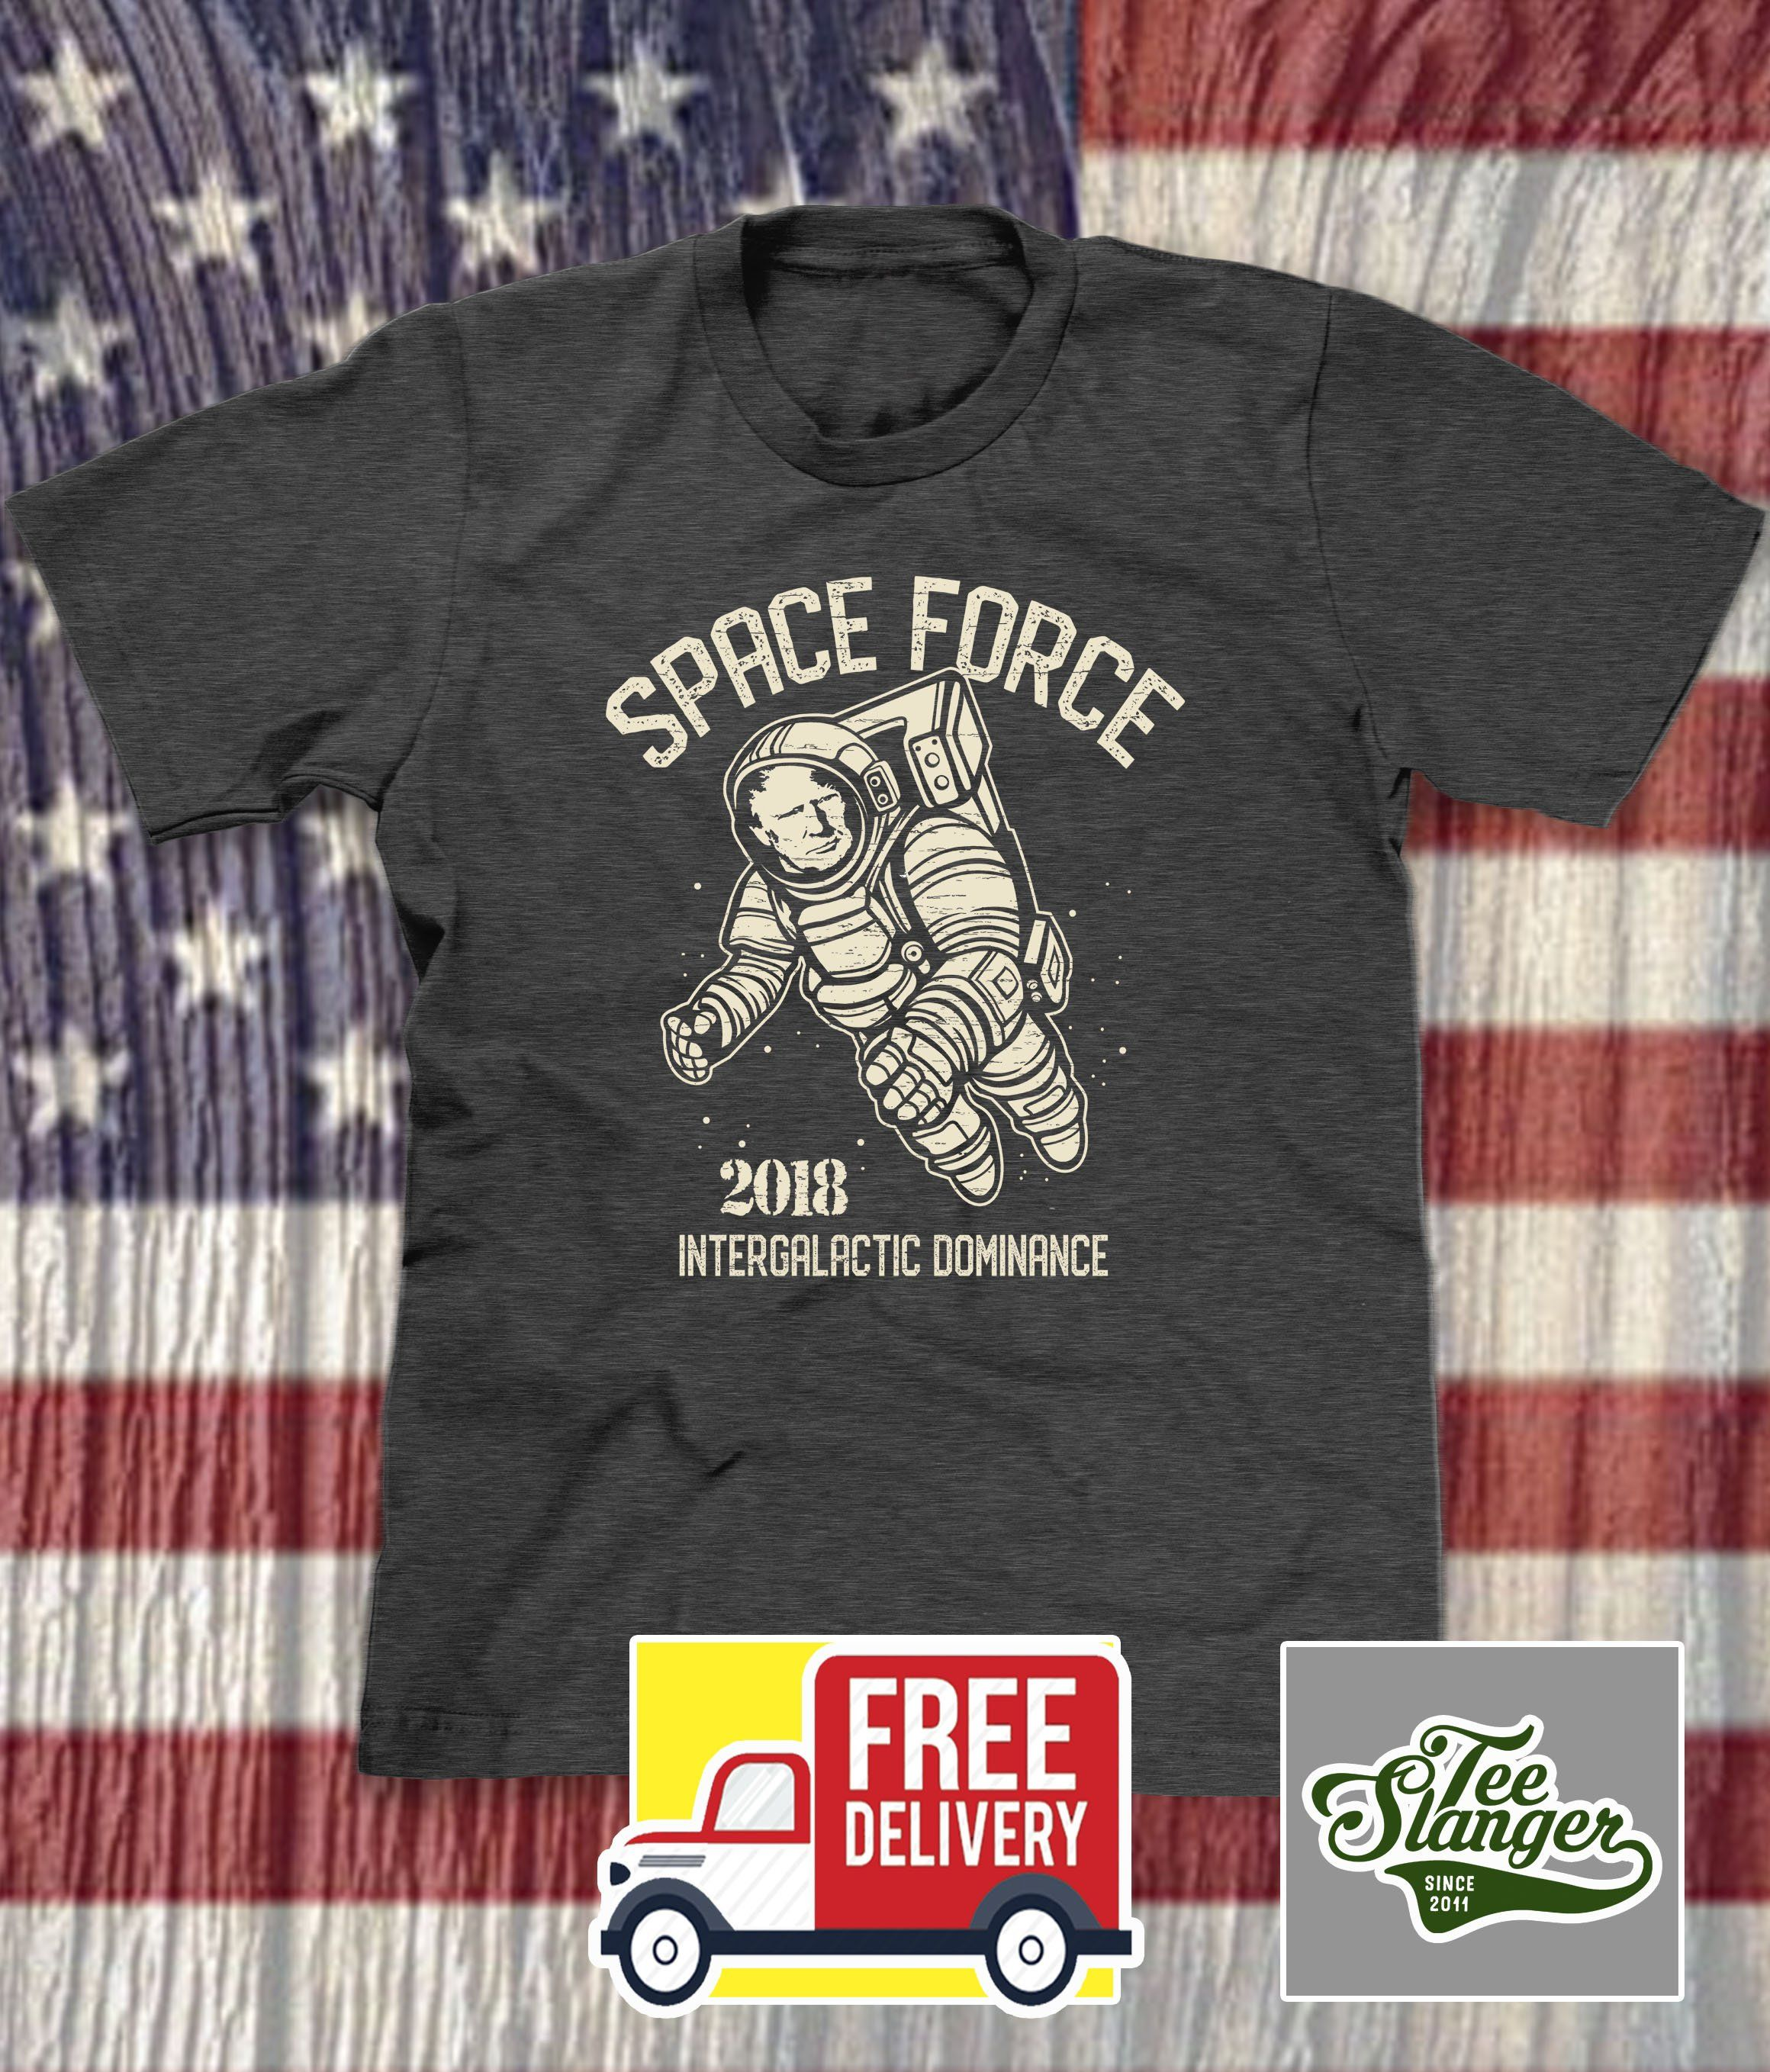 08e818d3c SPACE FORCE T-SHIRT – Teeslanger Now available in tank top & mens & womens  tees. We SHIP FREE everyday! #spaceforce #trump #maga